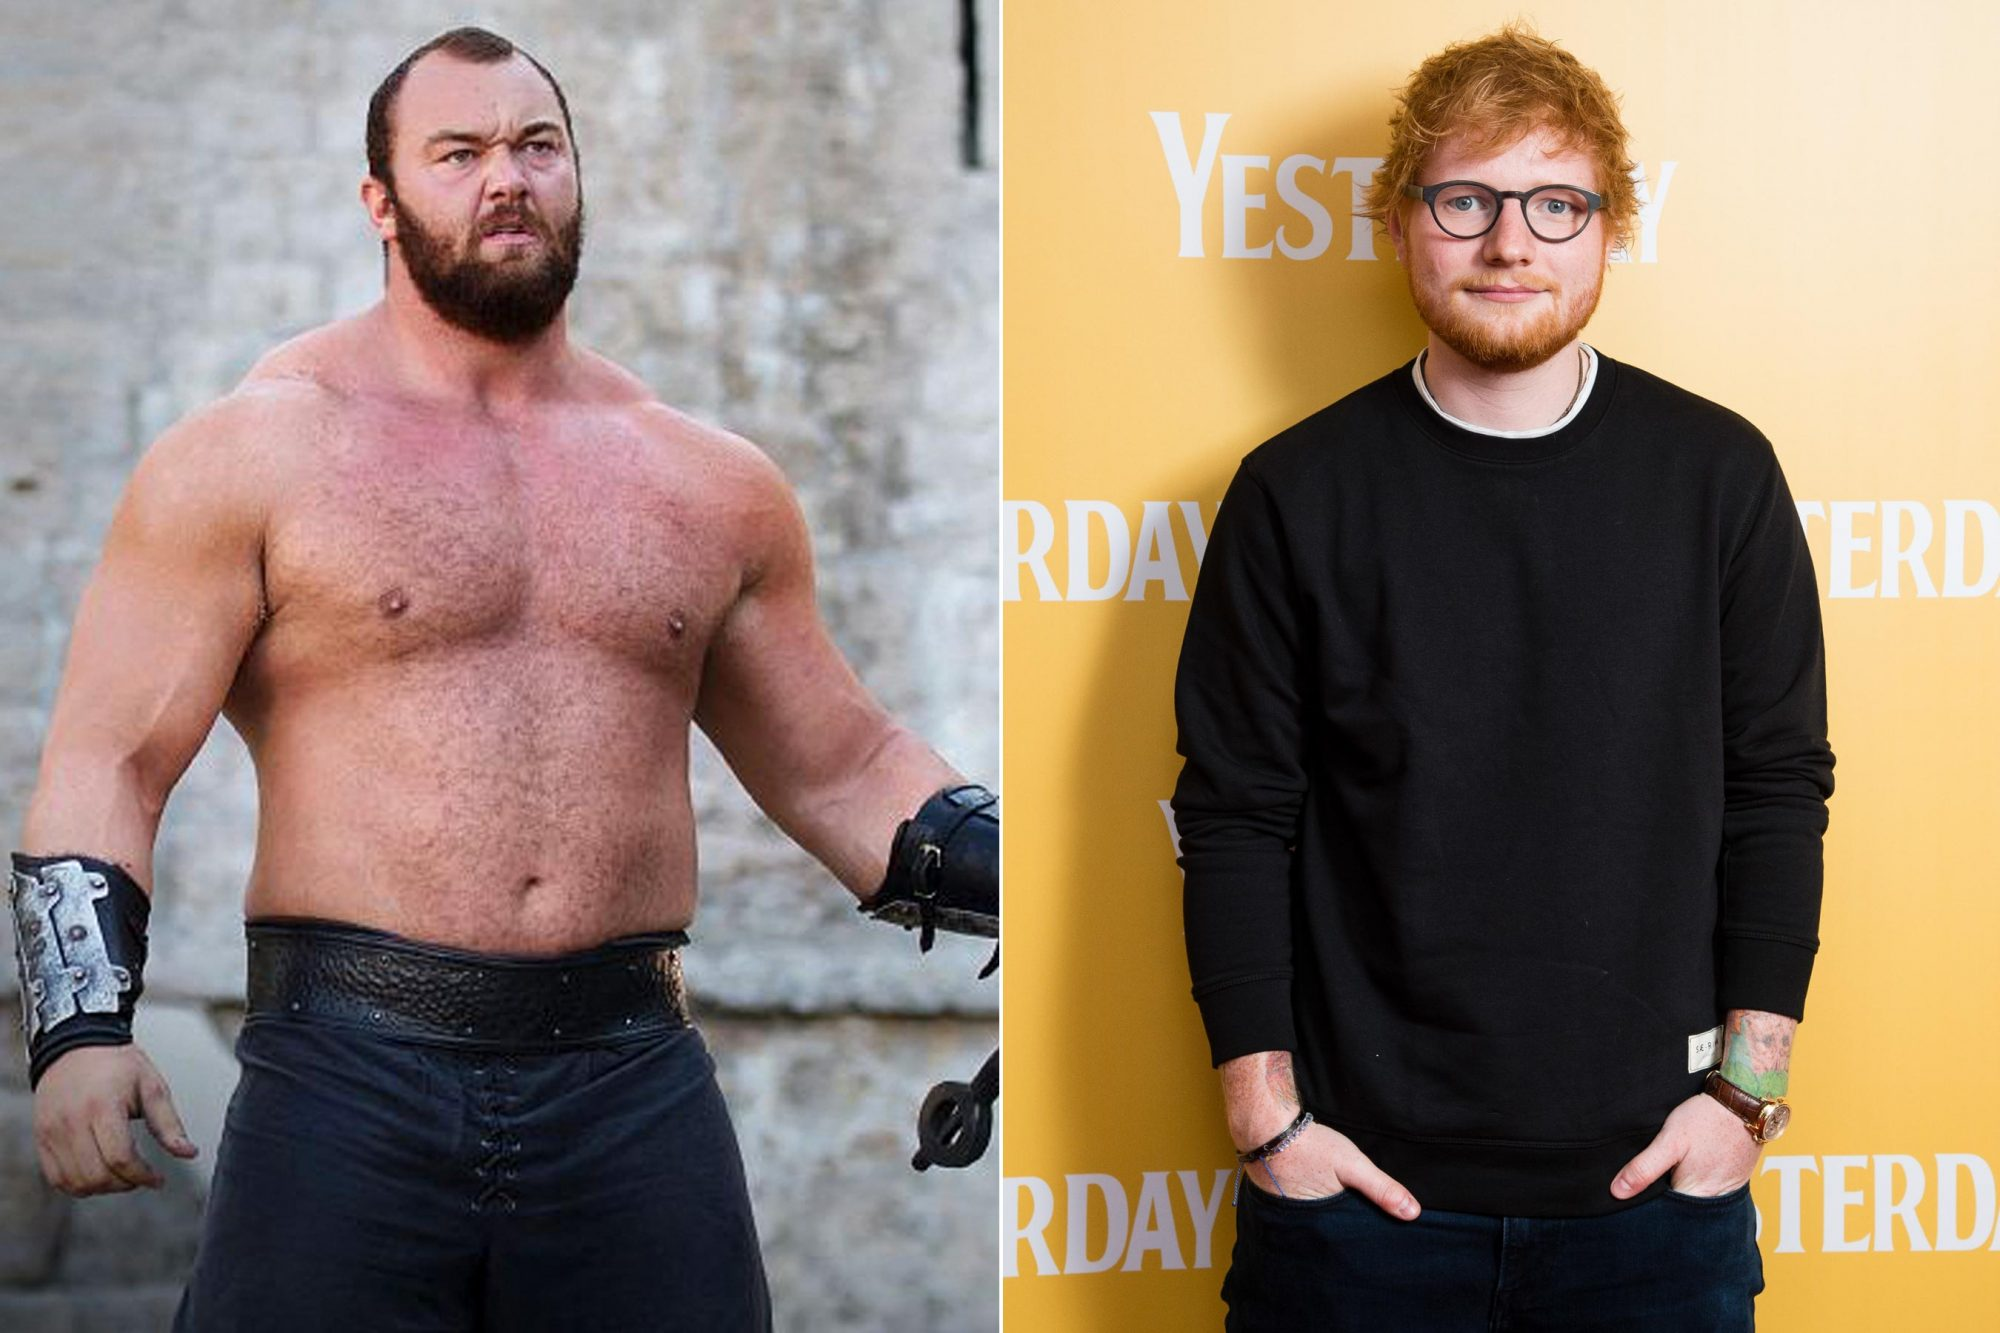 Game of Thrones Hafþór Júlíus Björnsson as The Mountain GORLESTON-ON-SEA, ENGLAND - JUNE 21: Ed Sheeran attends special screening of Yesterday on June 21, 2019 in Gorleston-on-Sea, England. (Photo by Jeff Spicer/Getty Images for Universal Pictures International)